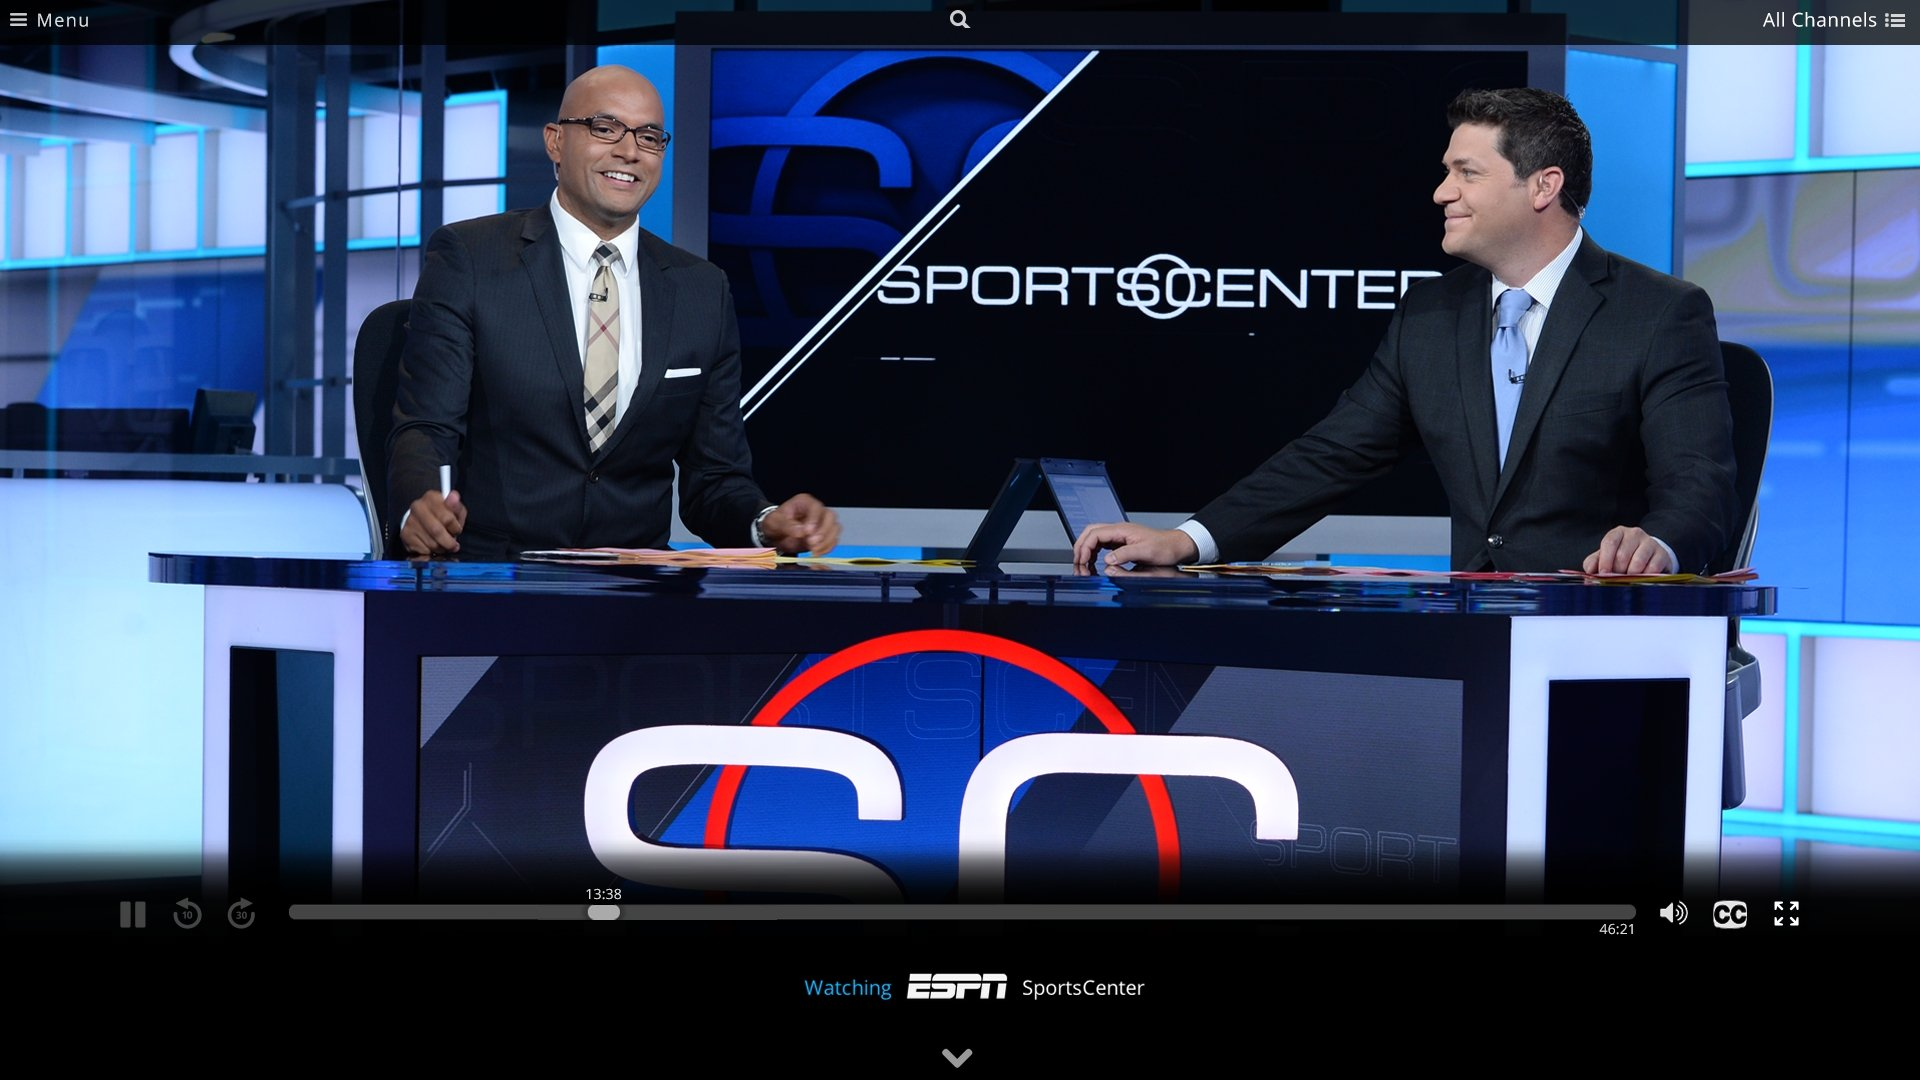 Sling Tv Watch Espn Without Cable For 20 A Month